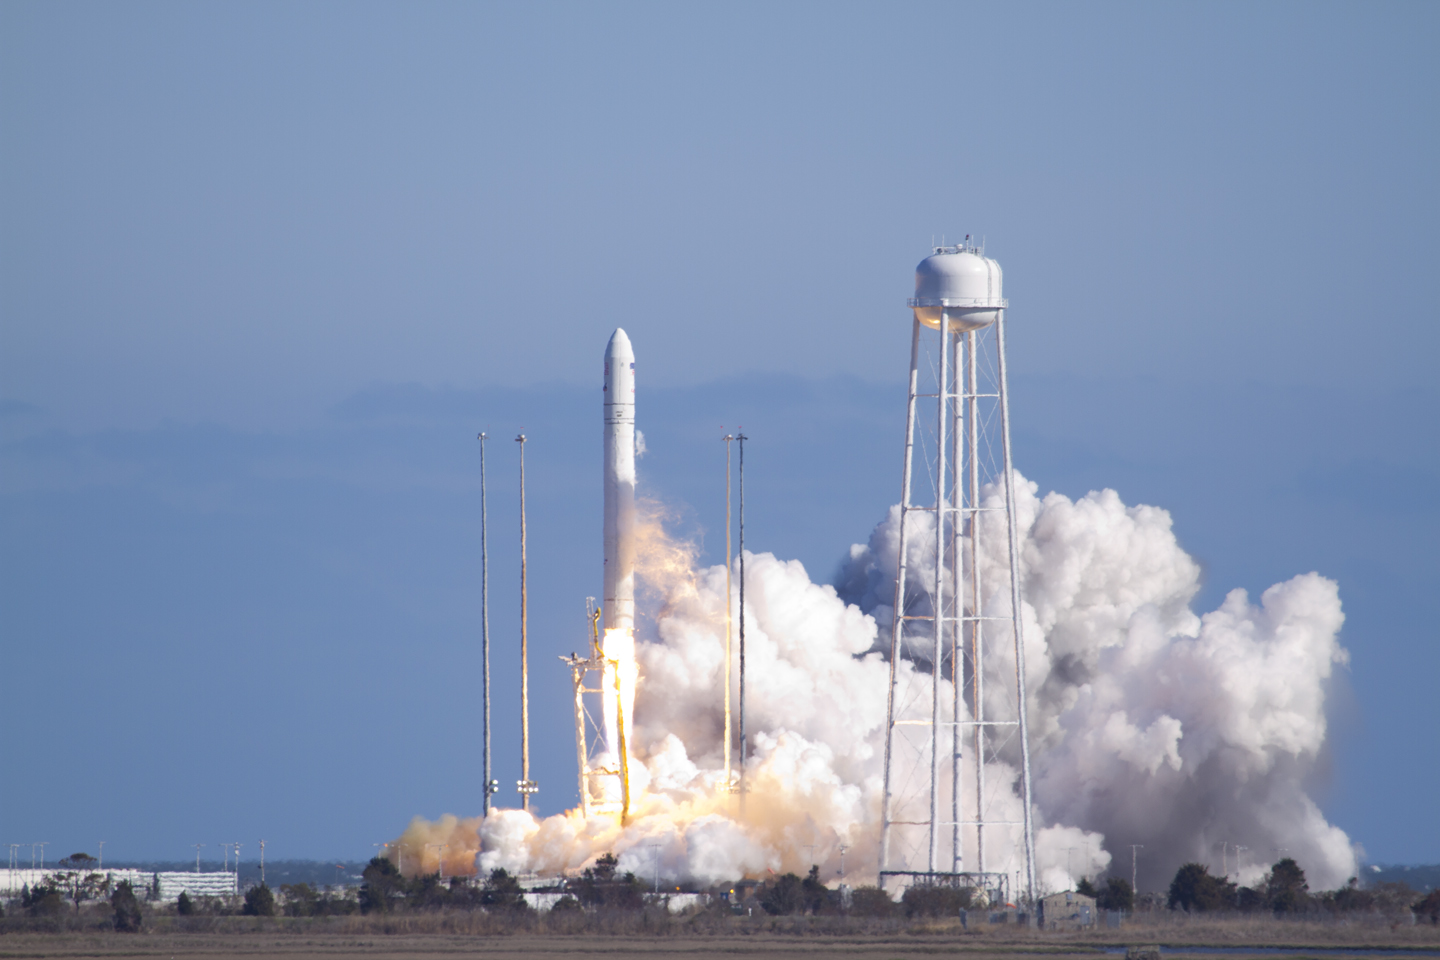 Cygnus is lofted into space by its primary launch vehicle, Antares. Photo Credit: Orbital ATK